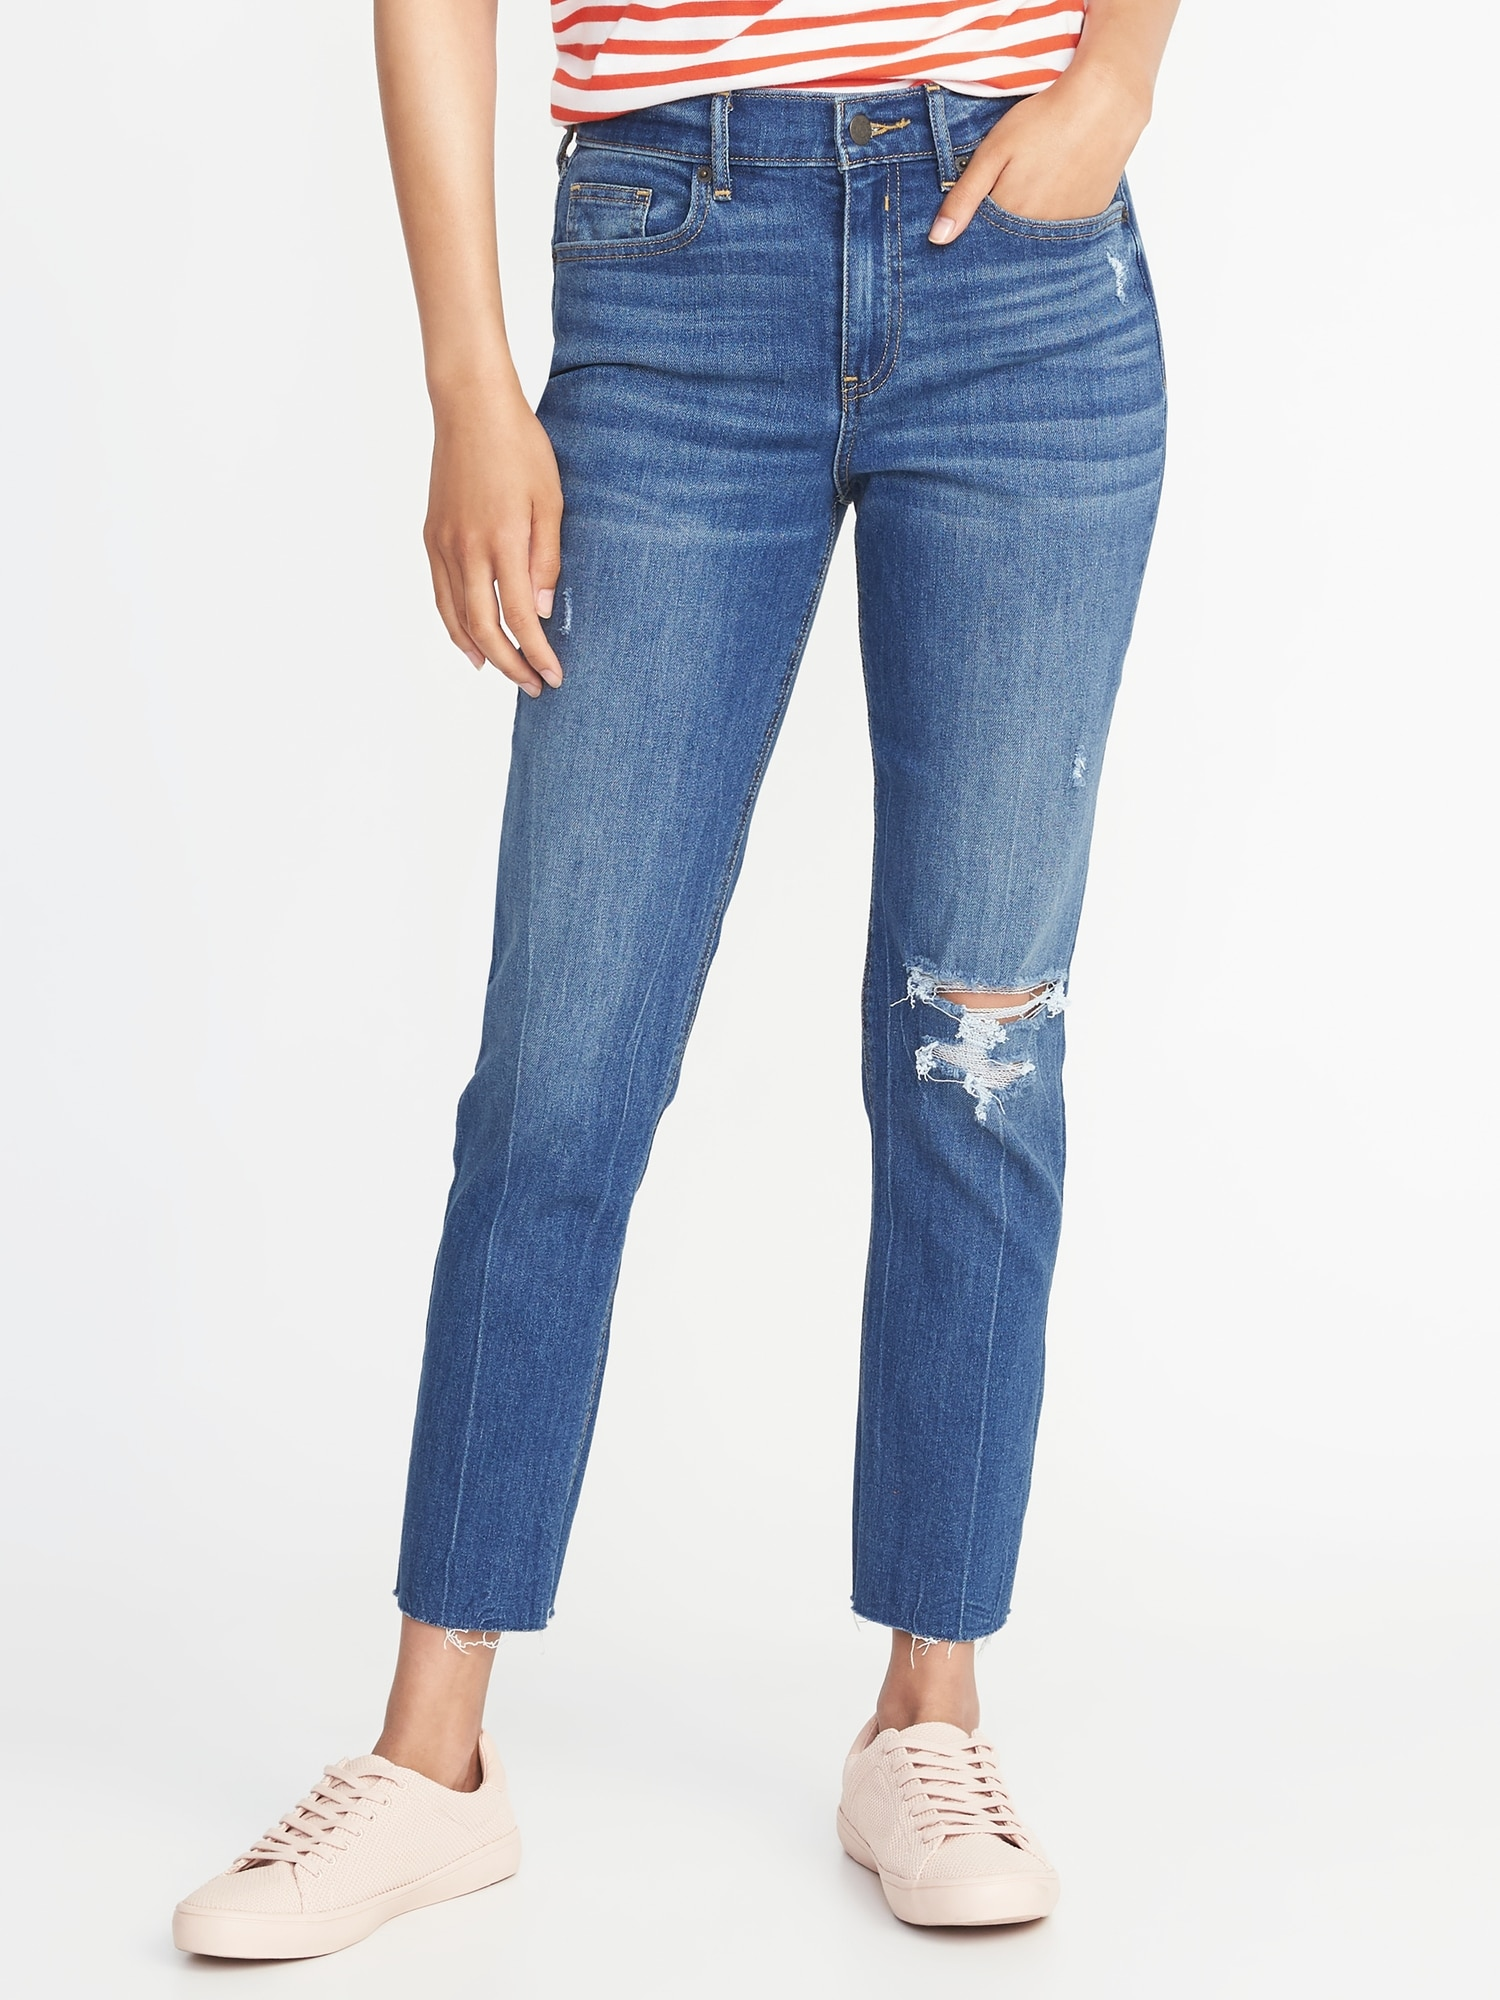 a0855d85312 Mid-Rise Distressed Raw-Hem Straight Ankle Jeans for Women